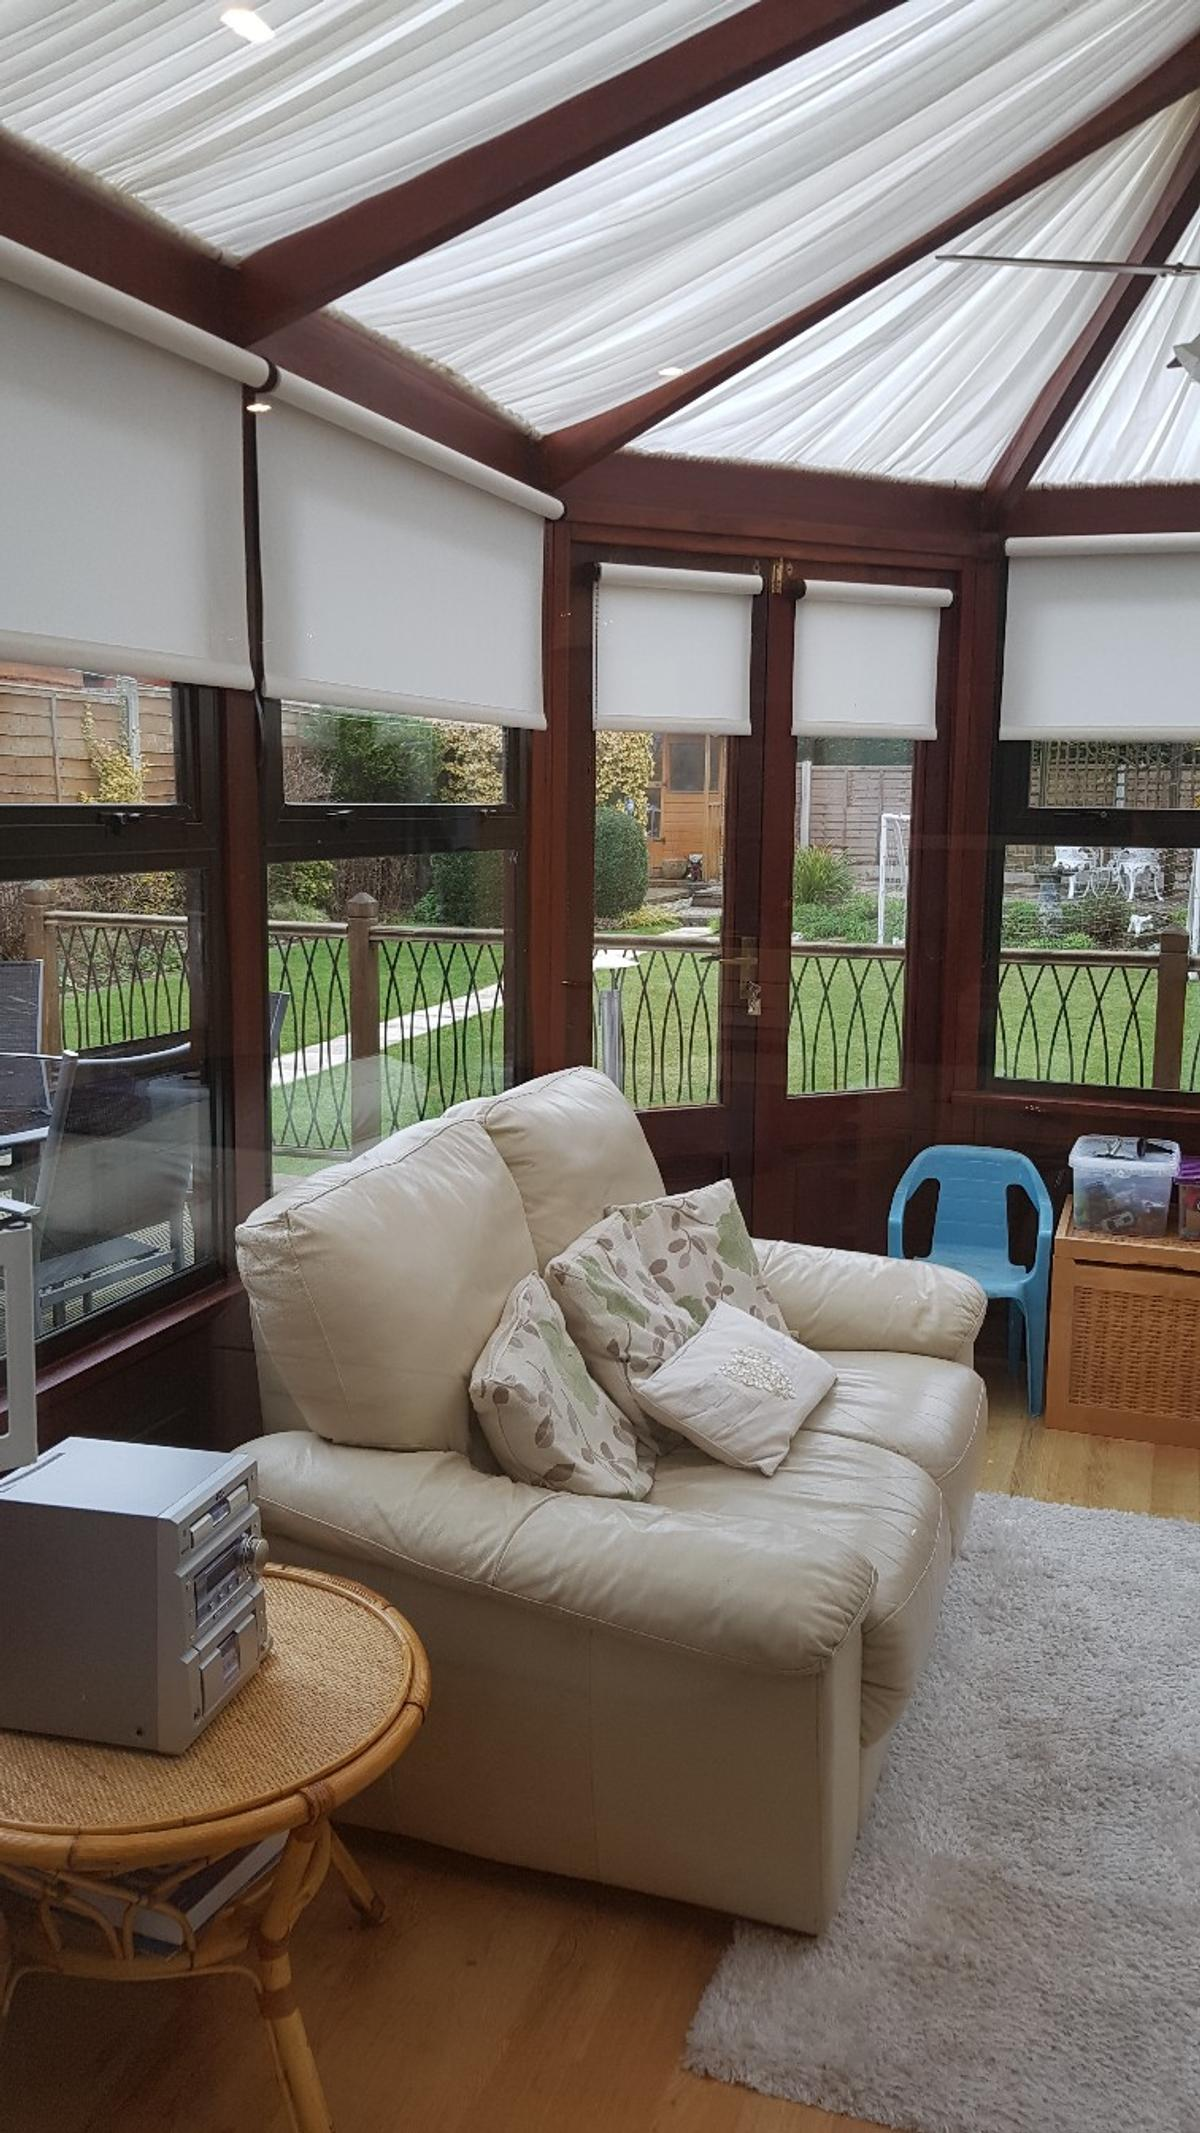 Conservatory Roller Blinds Plus All Fittings In B80 Stratford On Avon For 20 00 For Sale Shpock